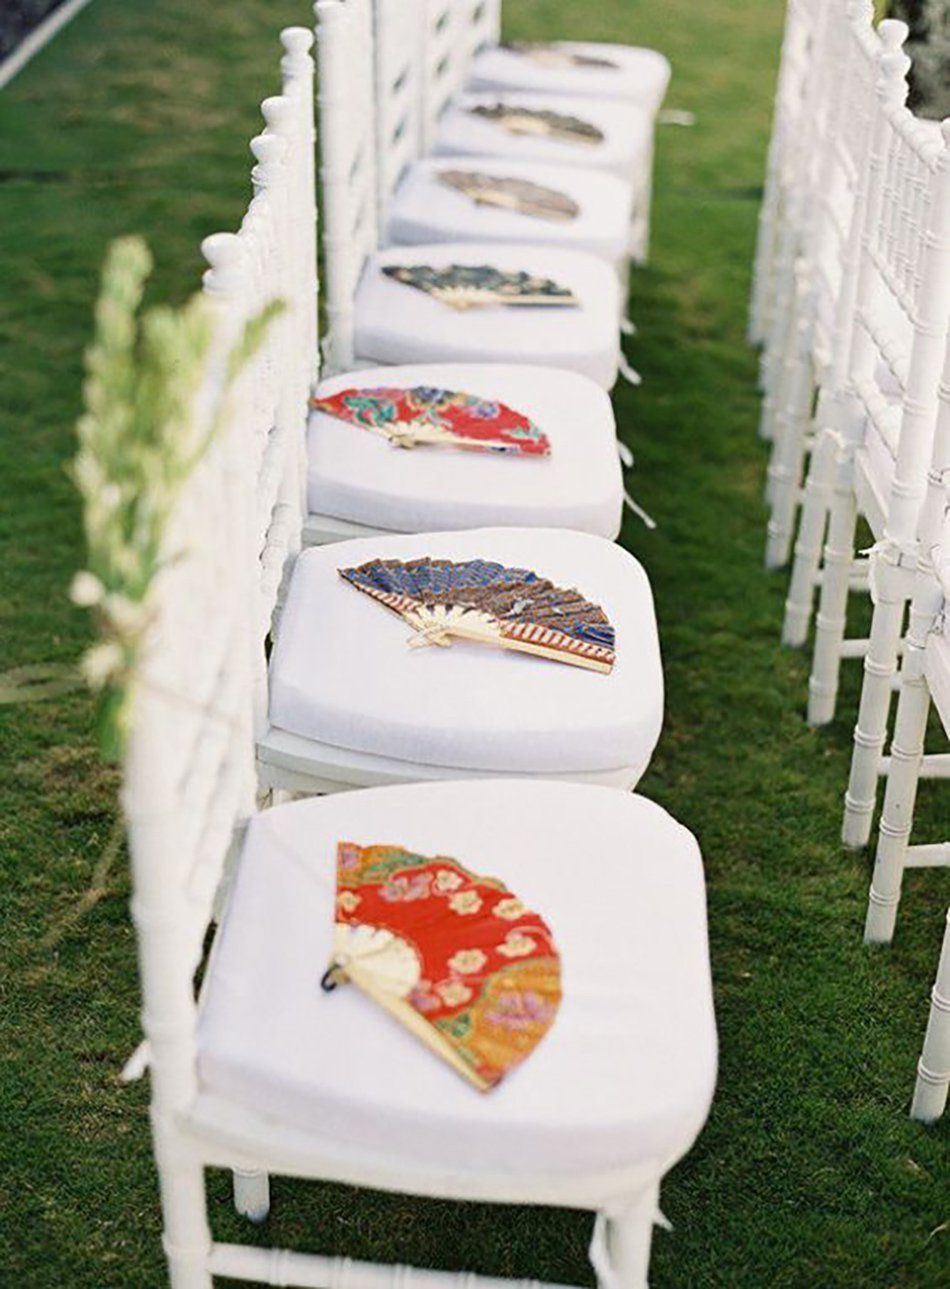 Fans placed on wedding chairs | Asian decor | Pinterest | Fans ...